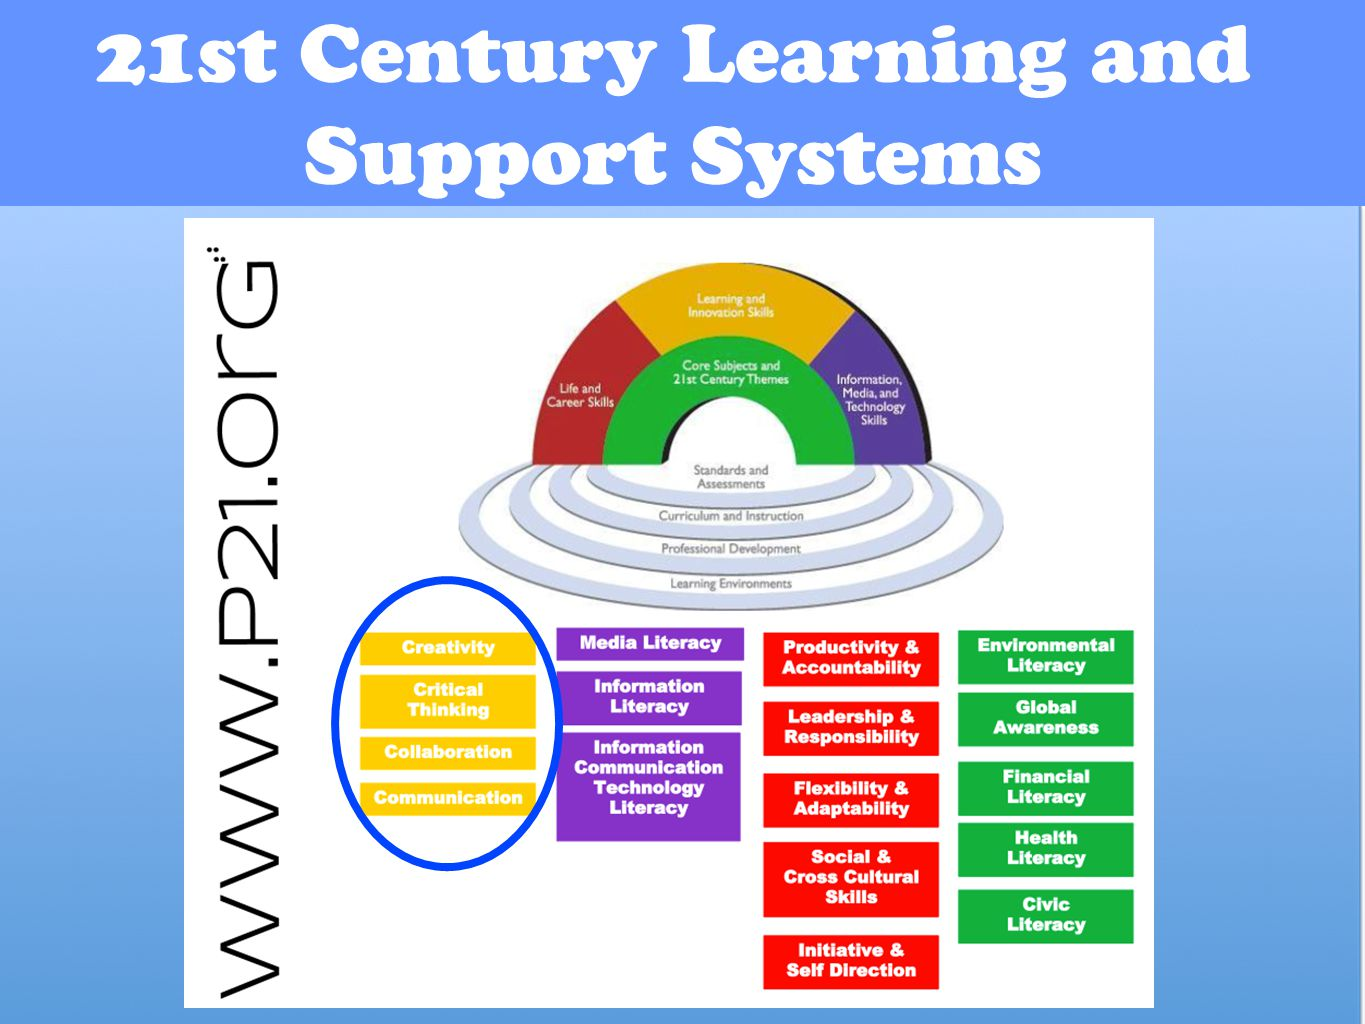 21st Century Learning and Support Systems